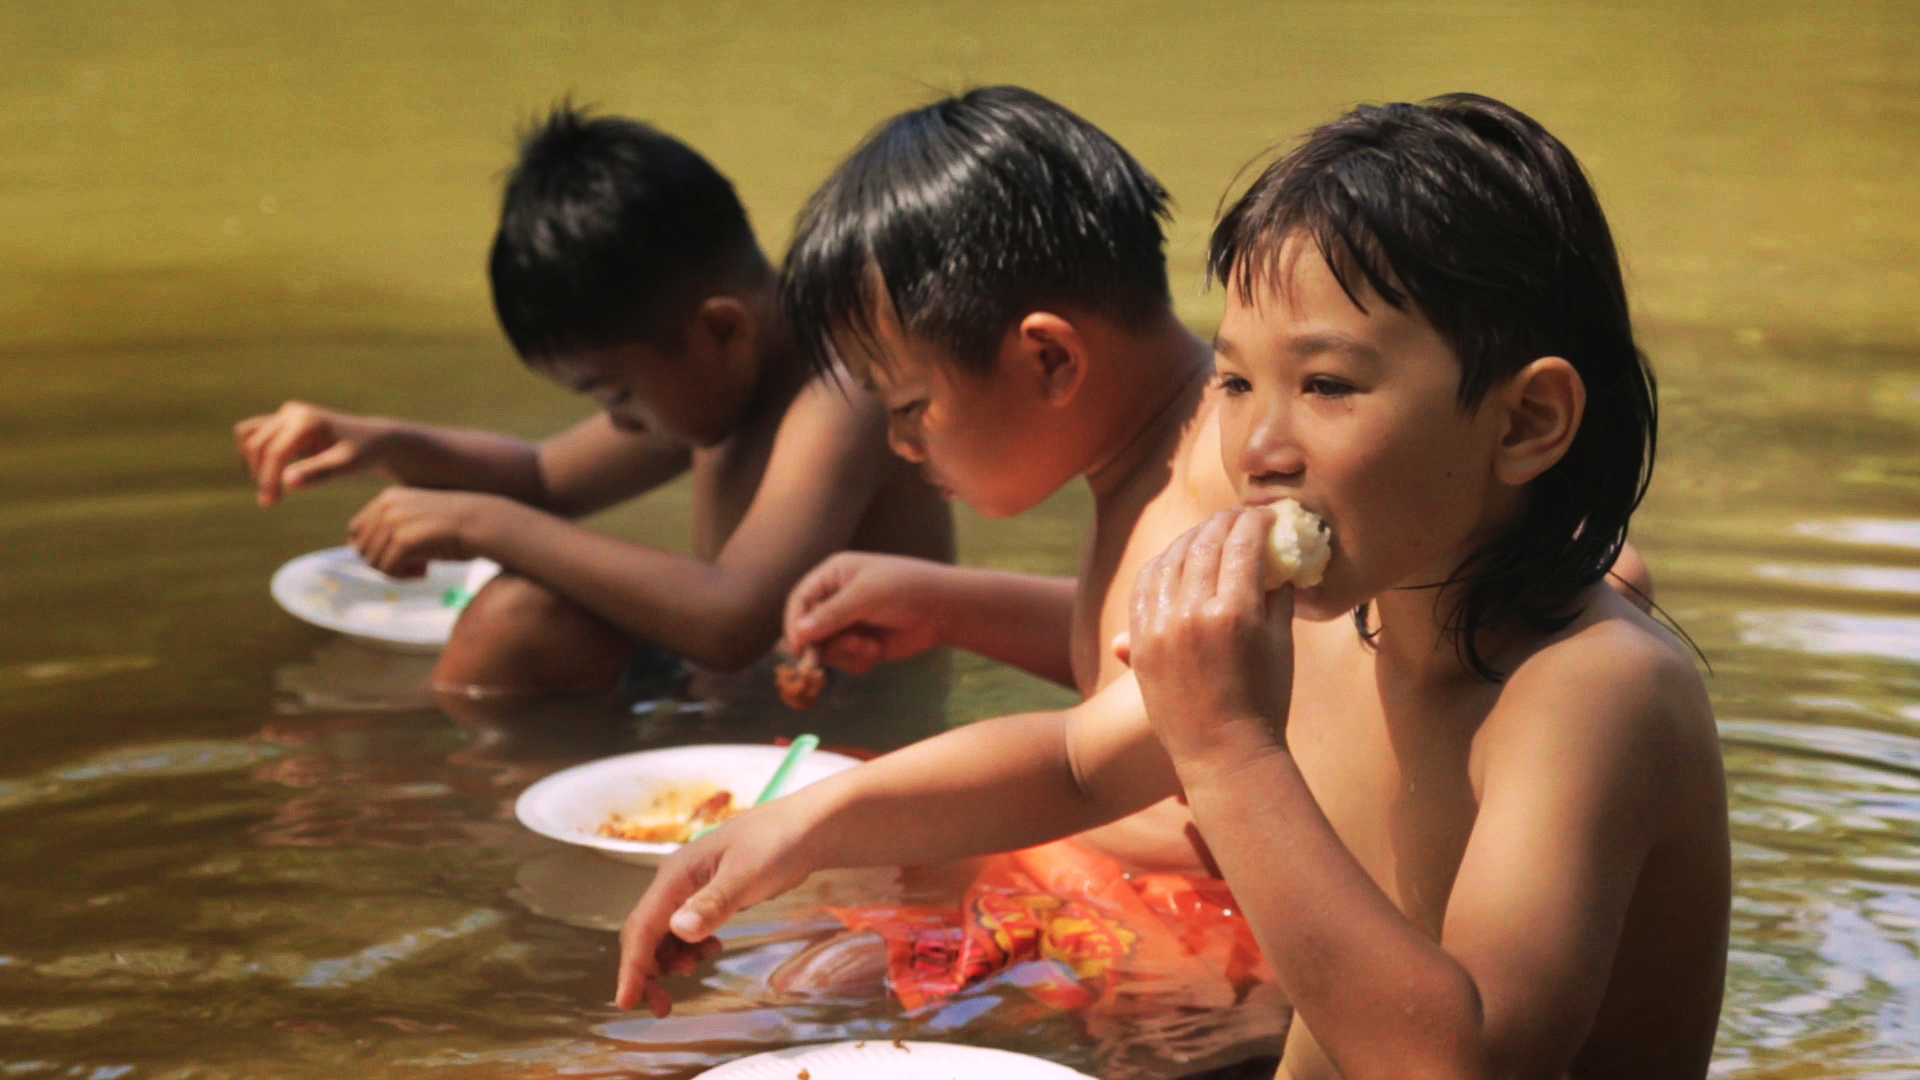 ATimeToSwim_film still_Agan and cousins on the river_photo by Vincent Gonneville.jpg